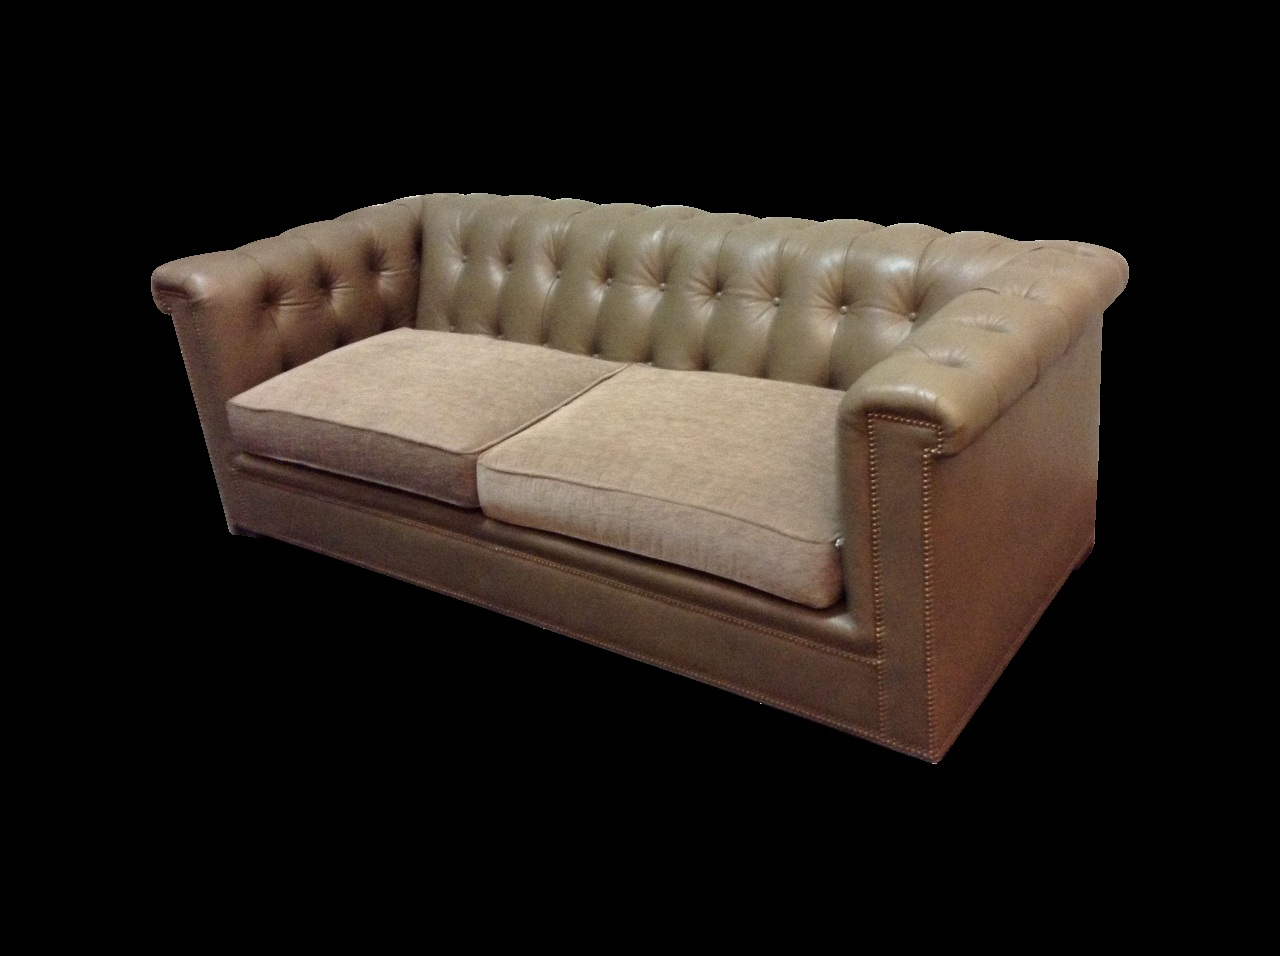 Walter Leather Sofa Fresh Hickory Chair Kent Tufted Leather Sofa On In Walter Leather Sofa Chairs (Image 19 of 20)